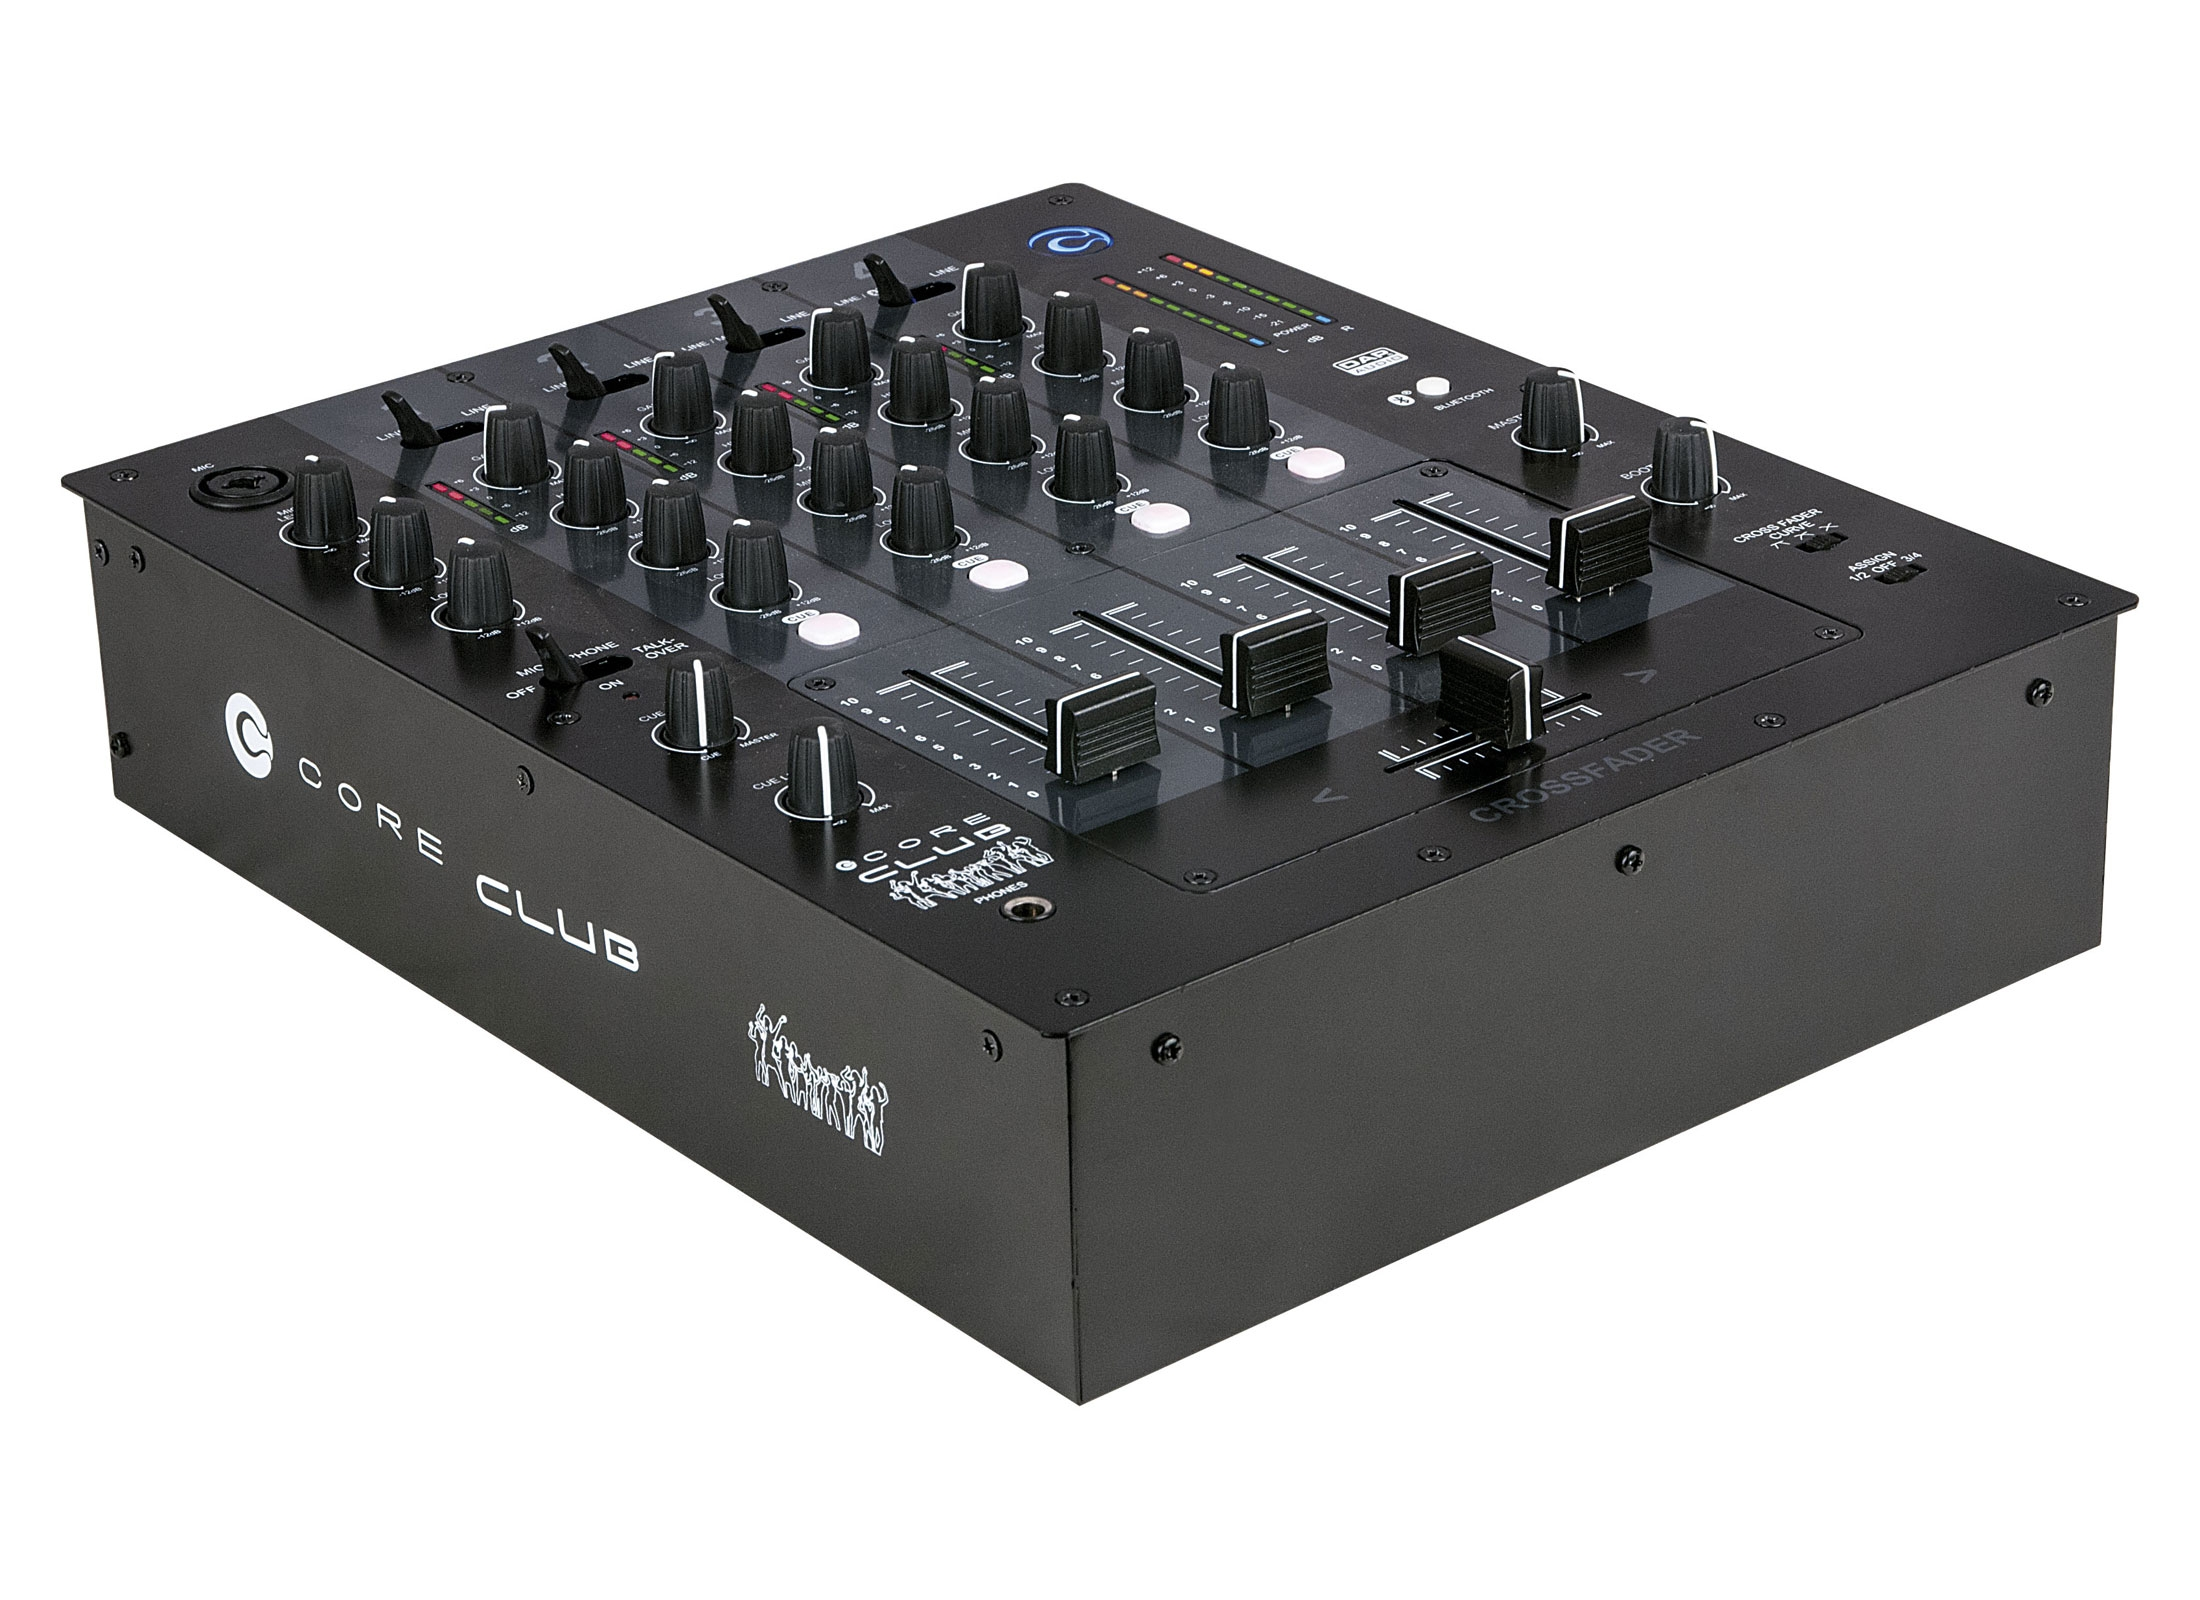 DAP Audio CORE Club DJ Mixer, 4-Channel, IN: 8x Line/1x Mic, 1xBluetooth,  OUT: 1xRecord/ 1xBooth/ 1xMaster/ 1xHeadphones